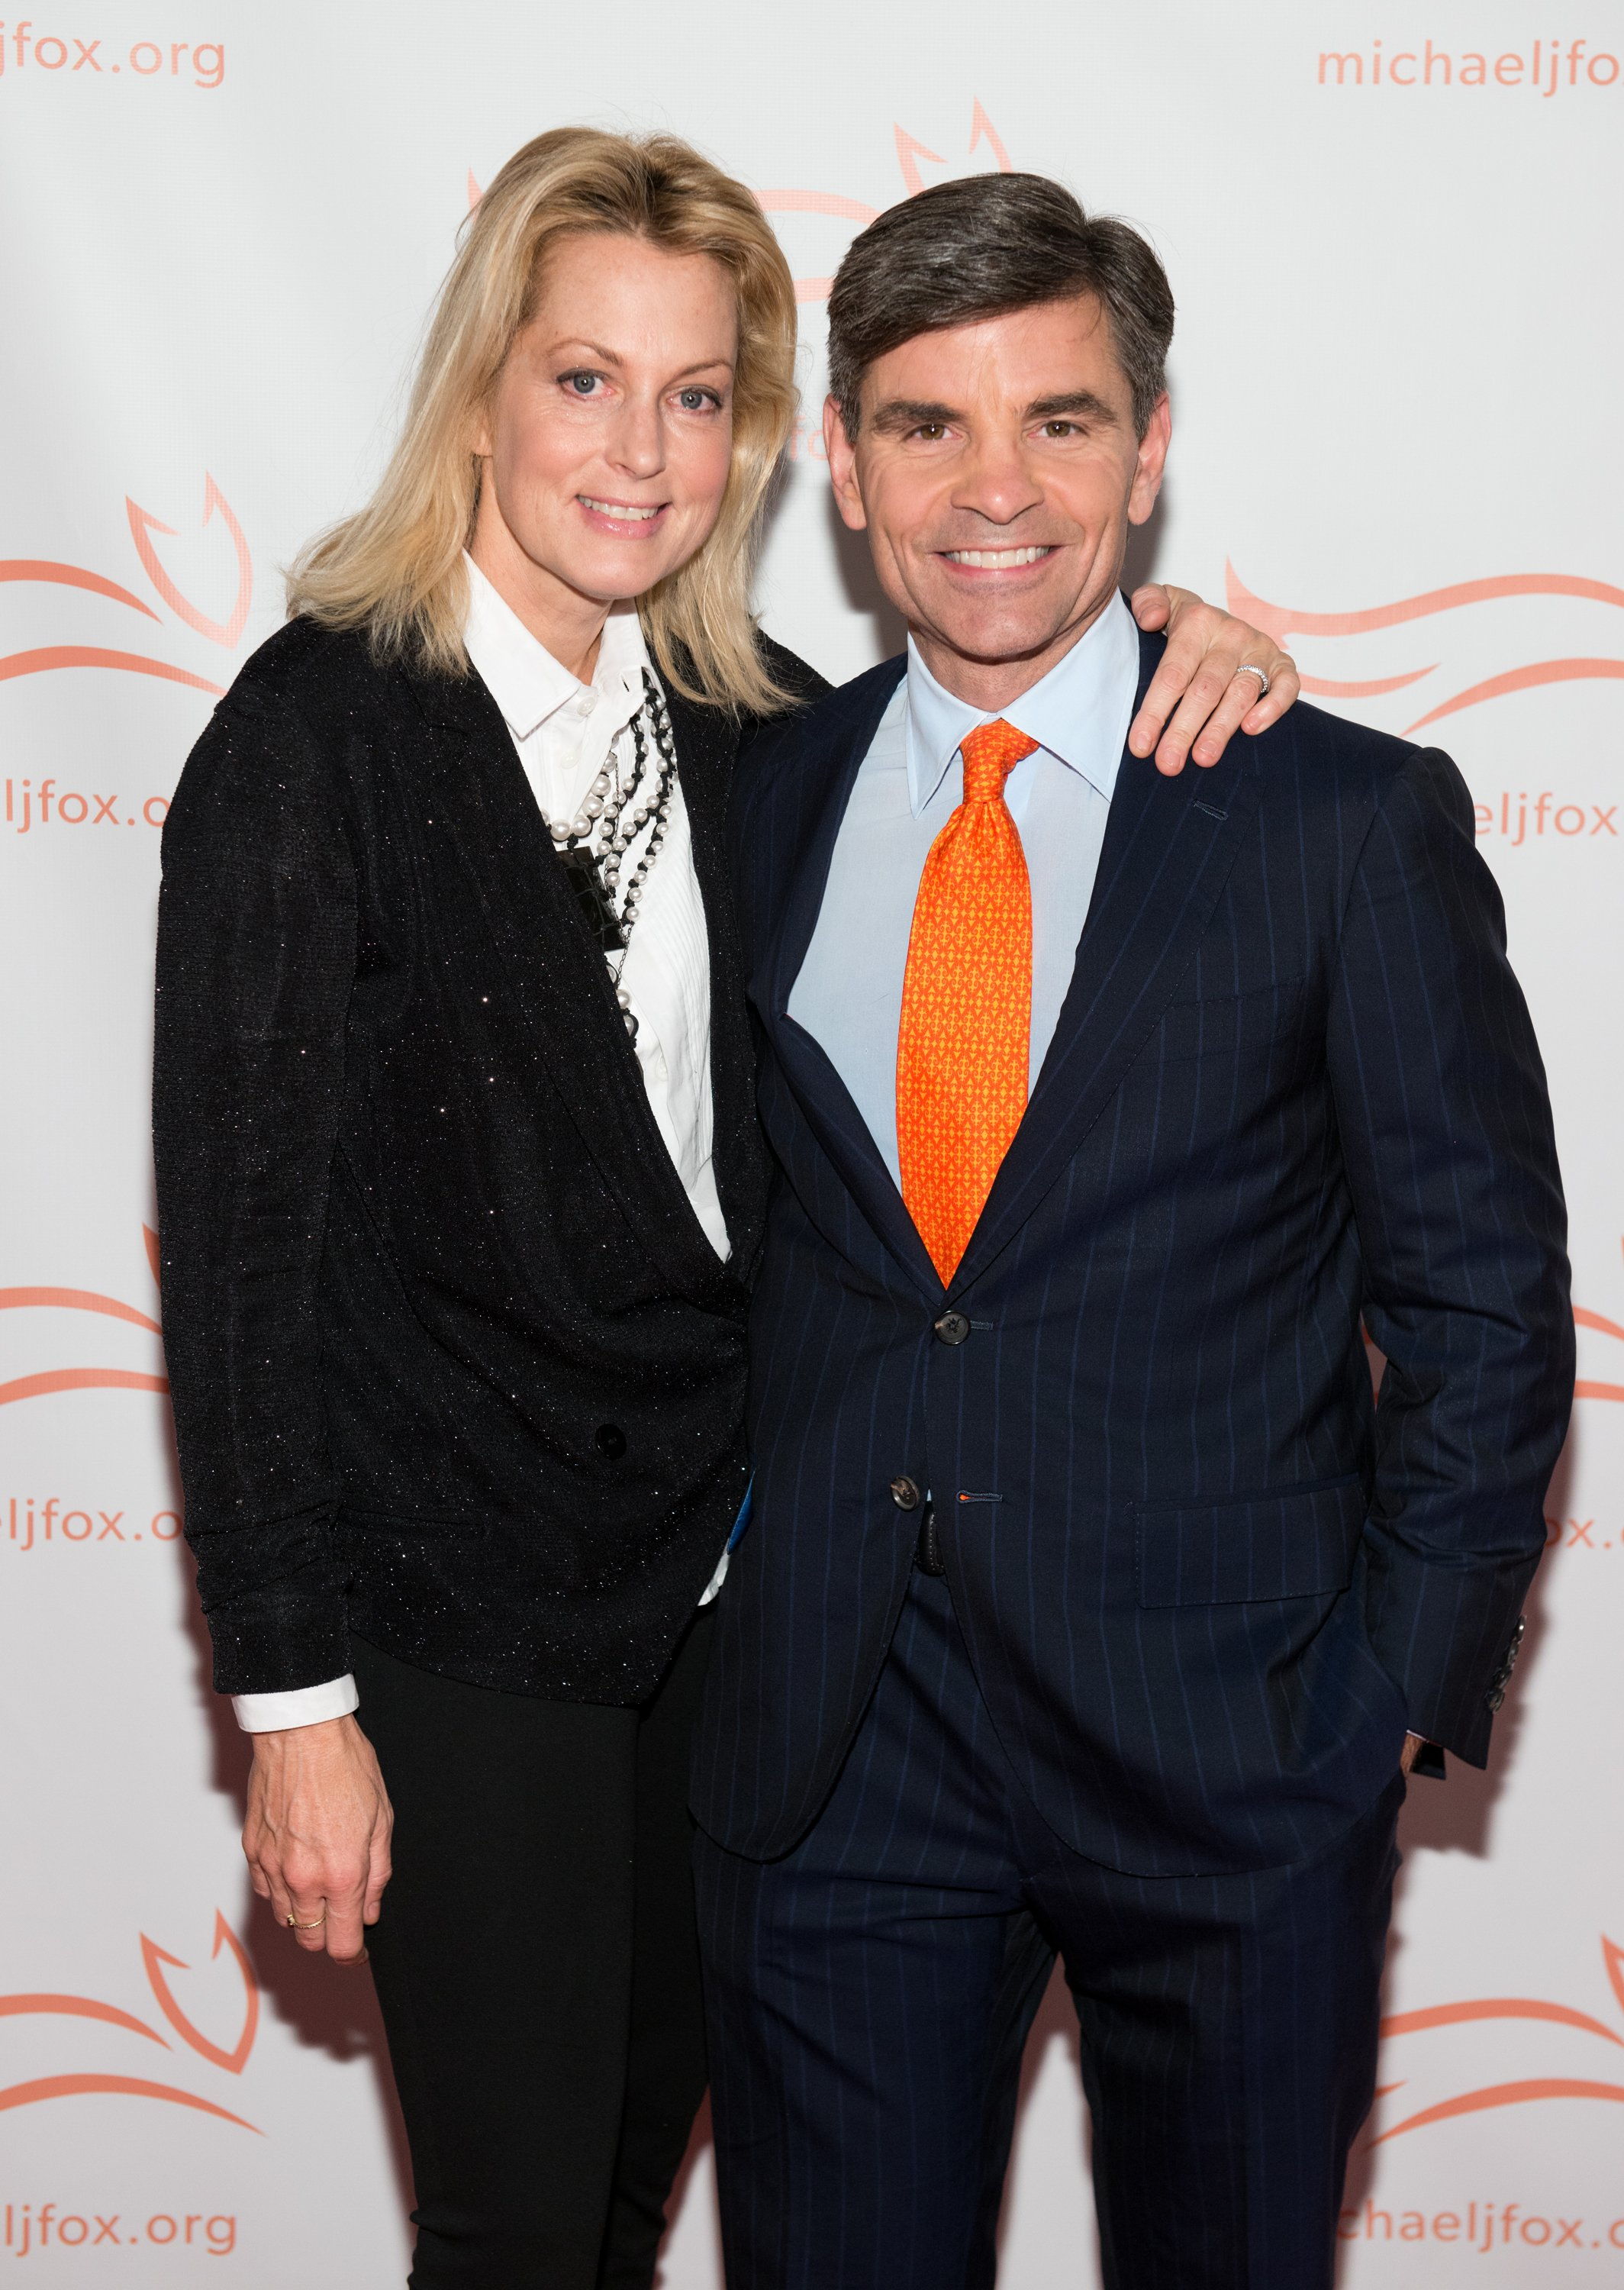 """Ali Wentworth and George Stephanopoulos attend the Michael J. Fox Foundation's """"A Funny Thing Happened On The Way To Cure Parkinson's"""" Gala on November 14, 2015.   Source: Getty Images"""